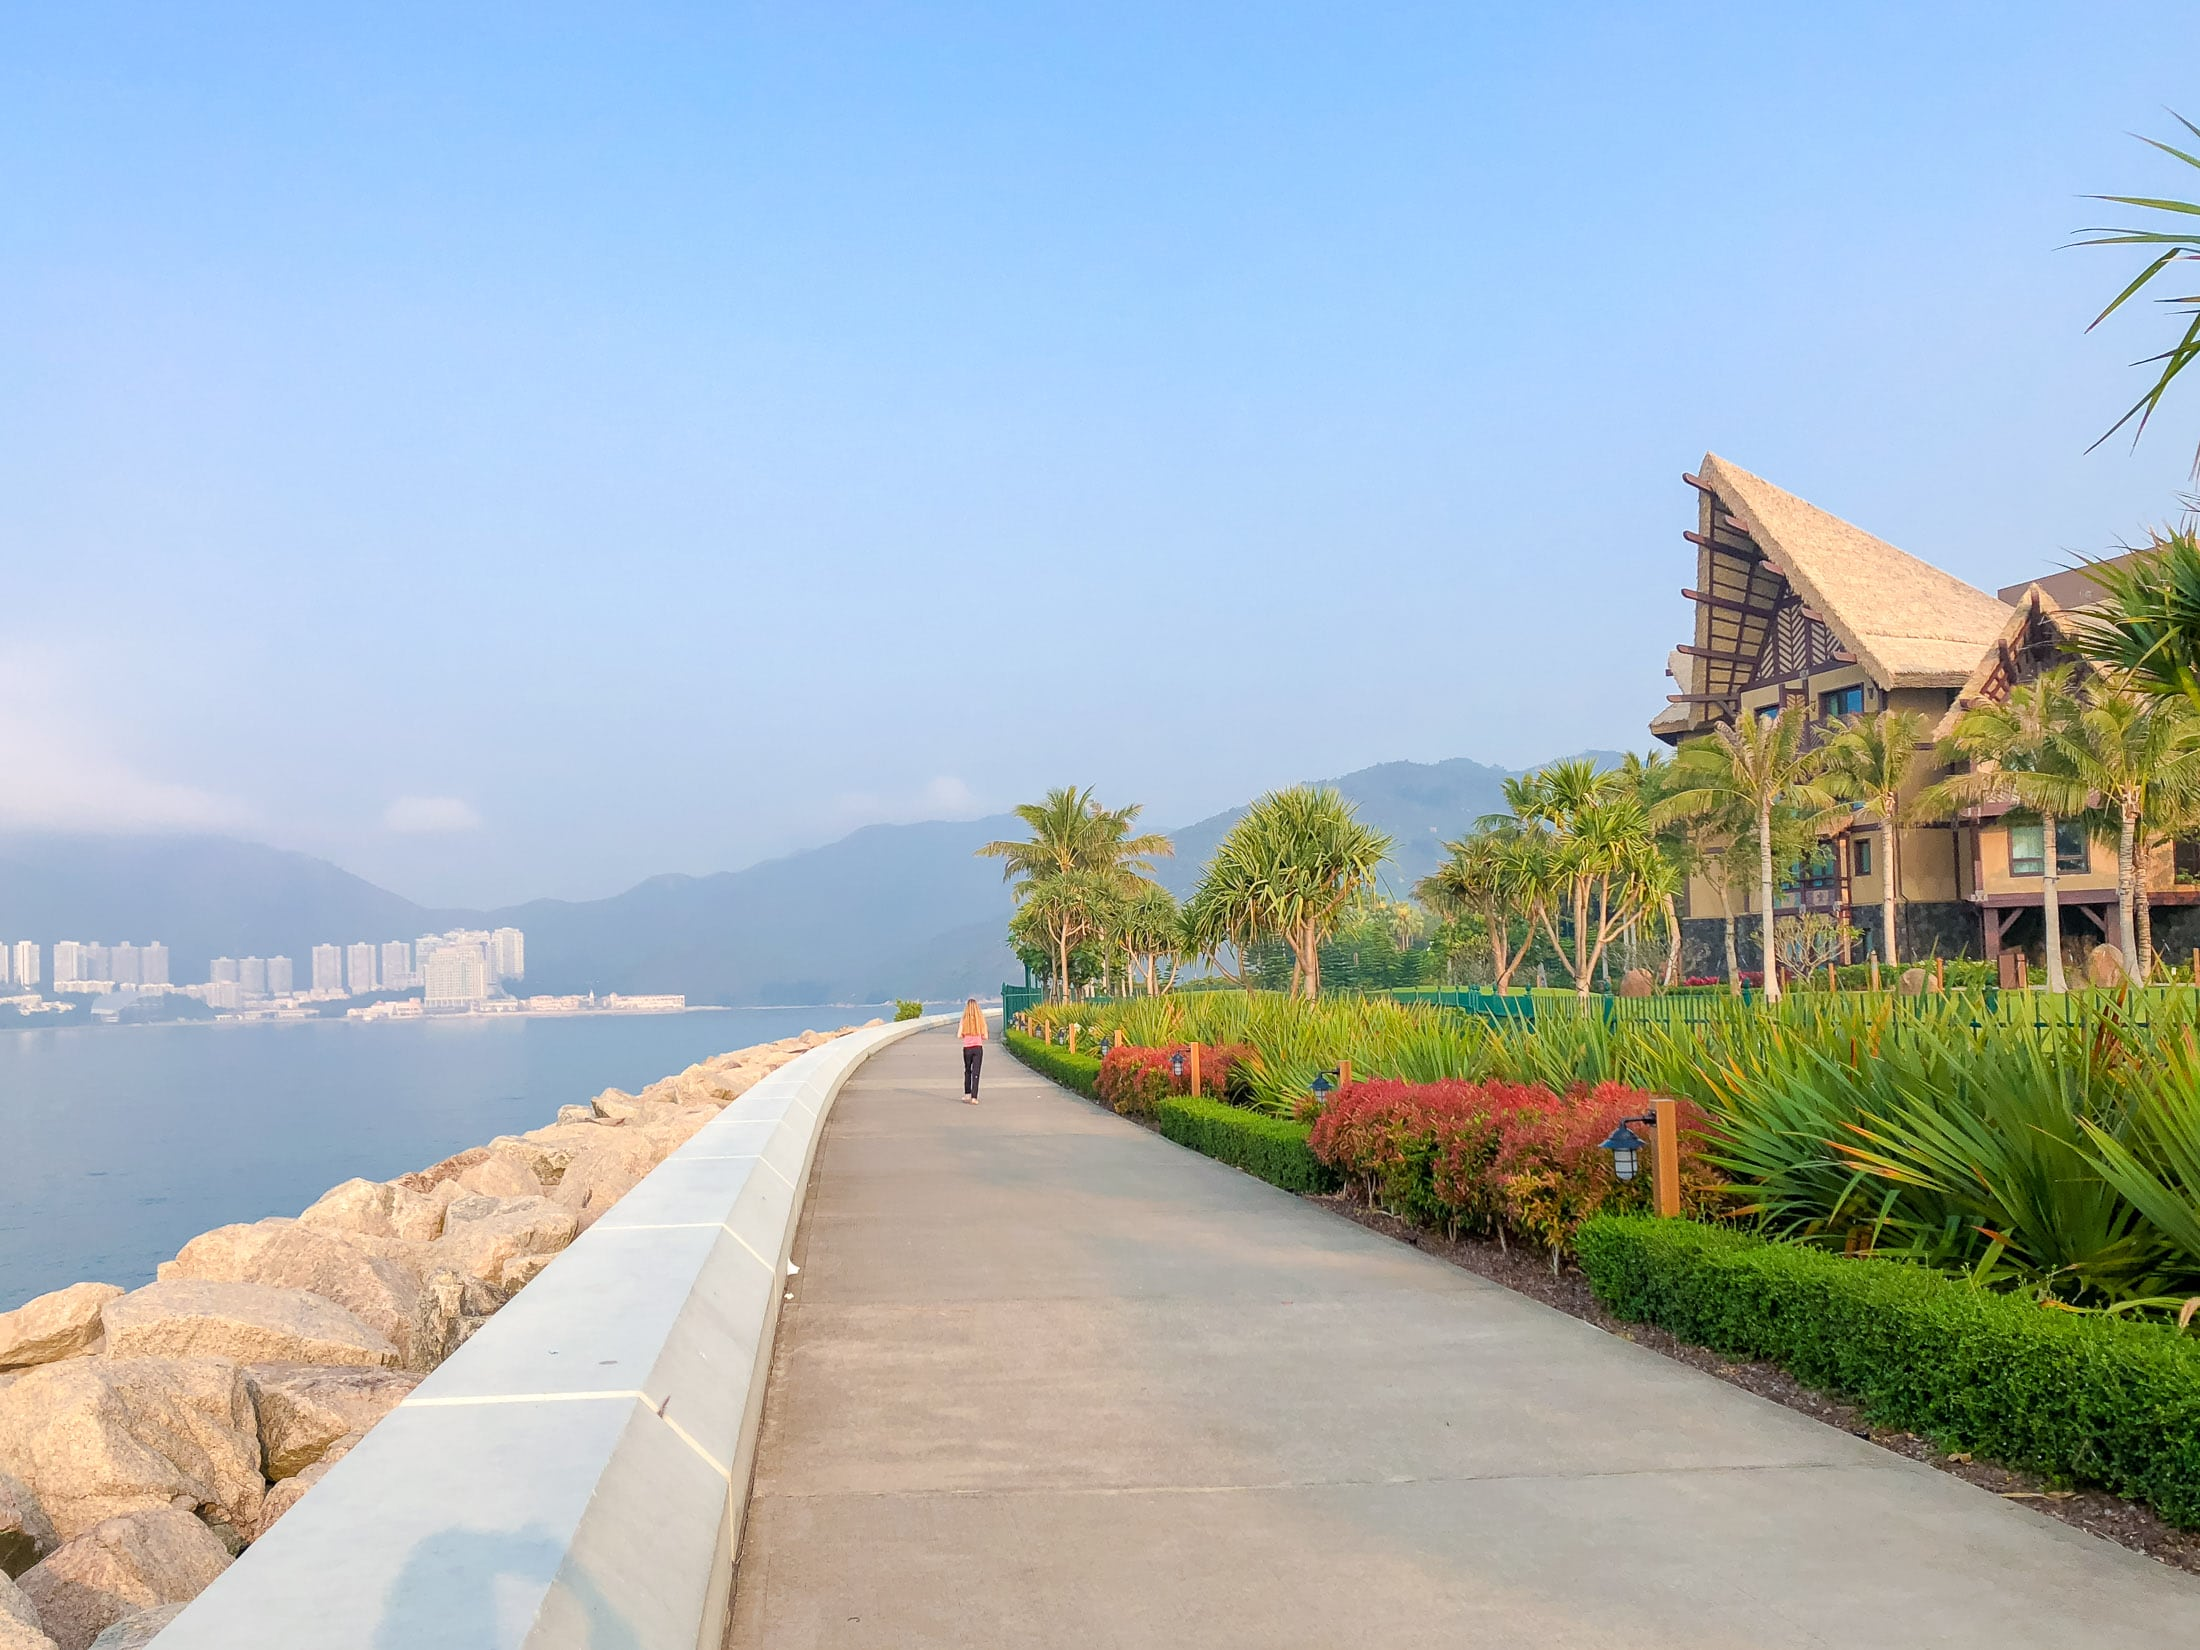 The Waterfront between Hong Kong Disneyland hotels, park and pier